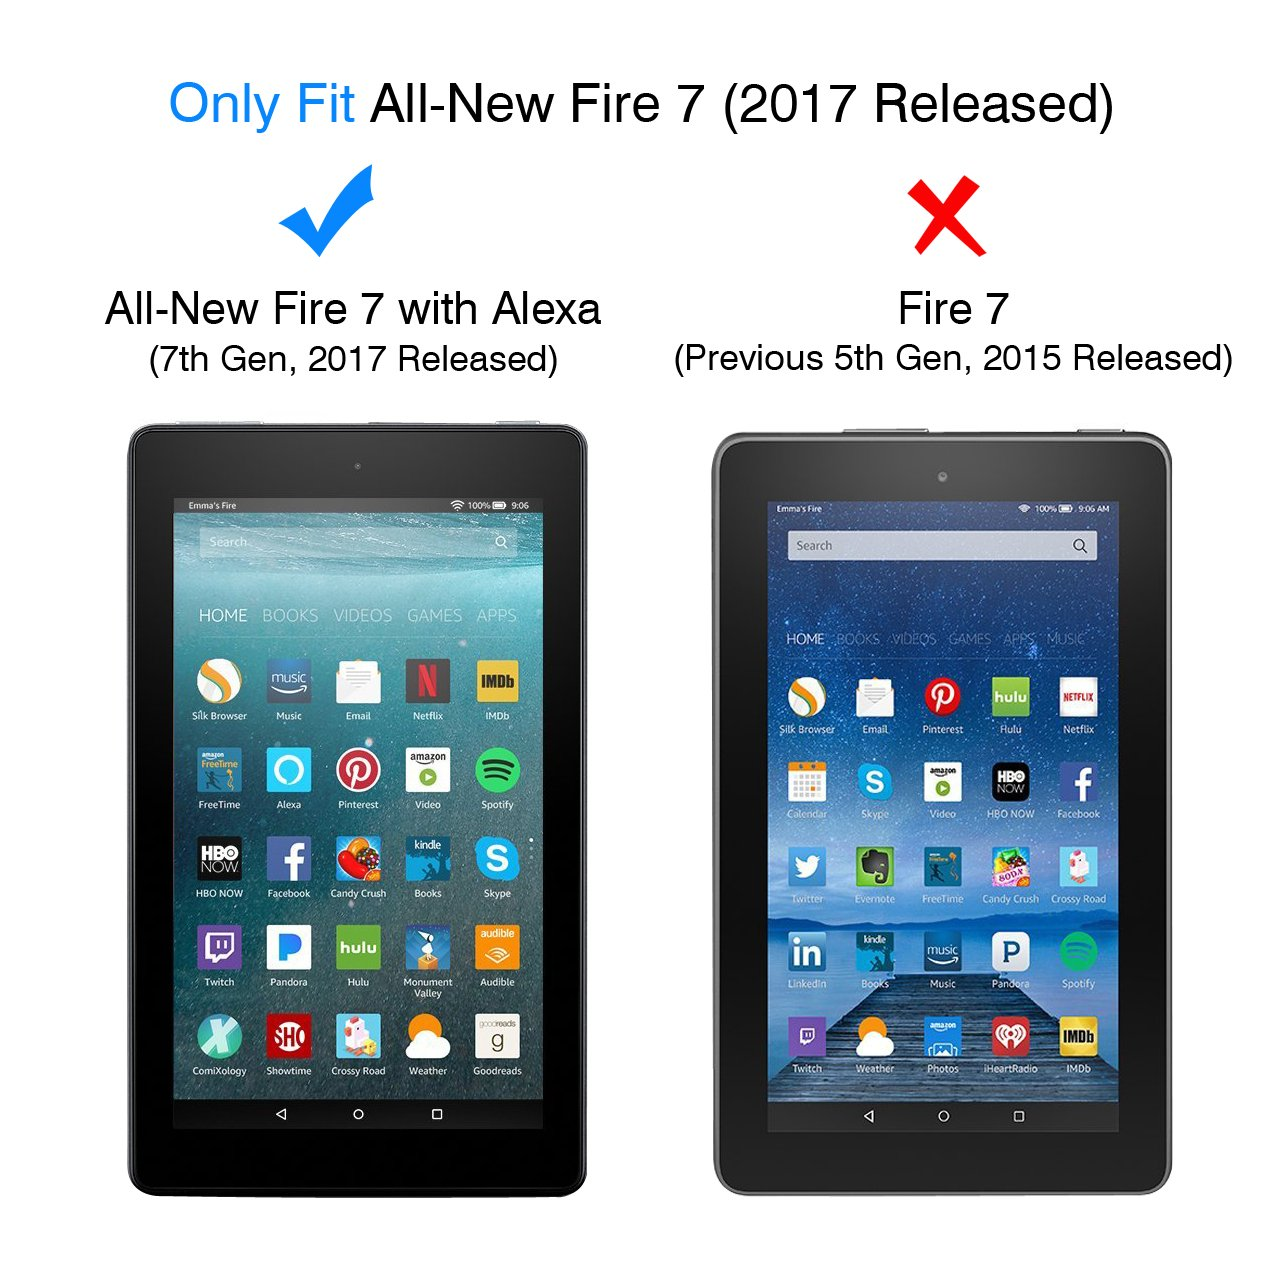 Amazon.com: All-New Fire 7 Kids Edition/Fire 7 Screen Protector ...